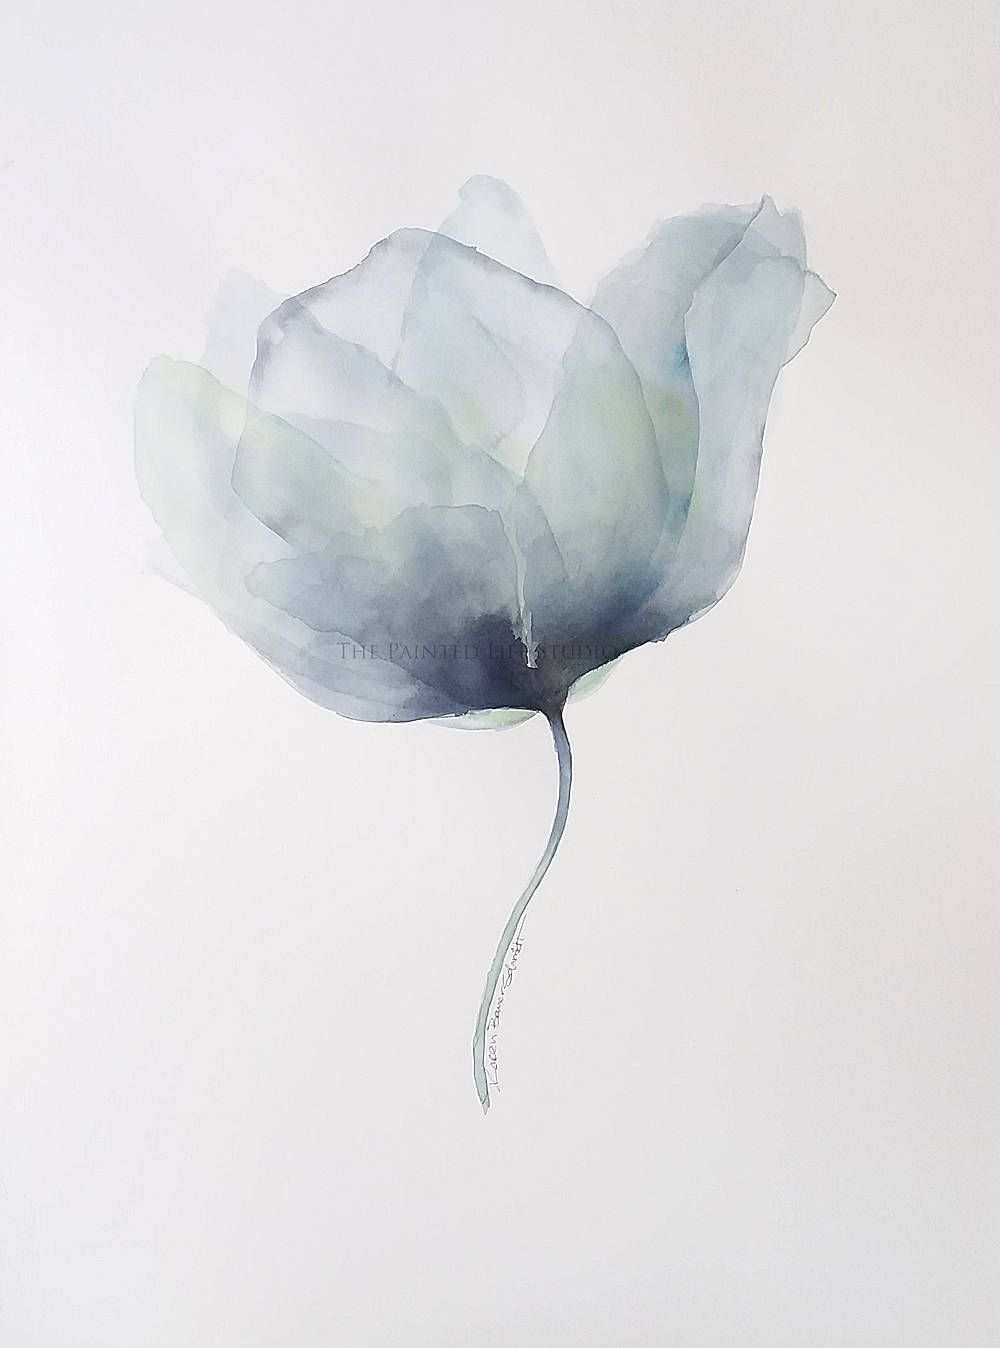 Blue Poppy Large Original Art 22x30 Inch Watercolor Original Painting Modern Translucent X Ray Style Wall Decor Art Painting Watercolor Paintings Tutorials